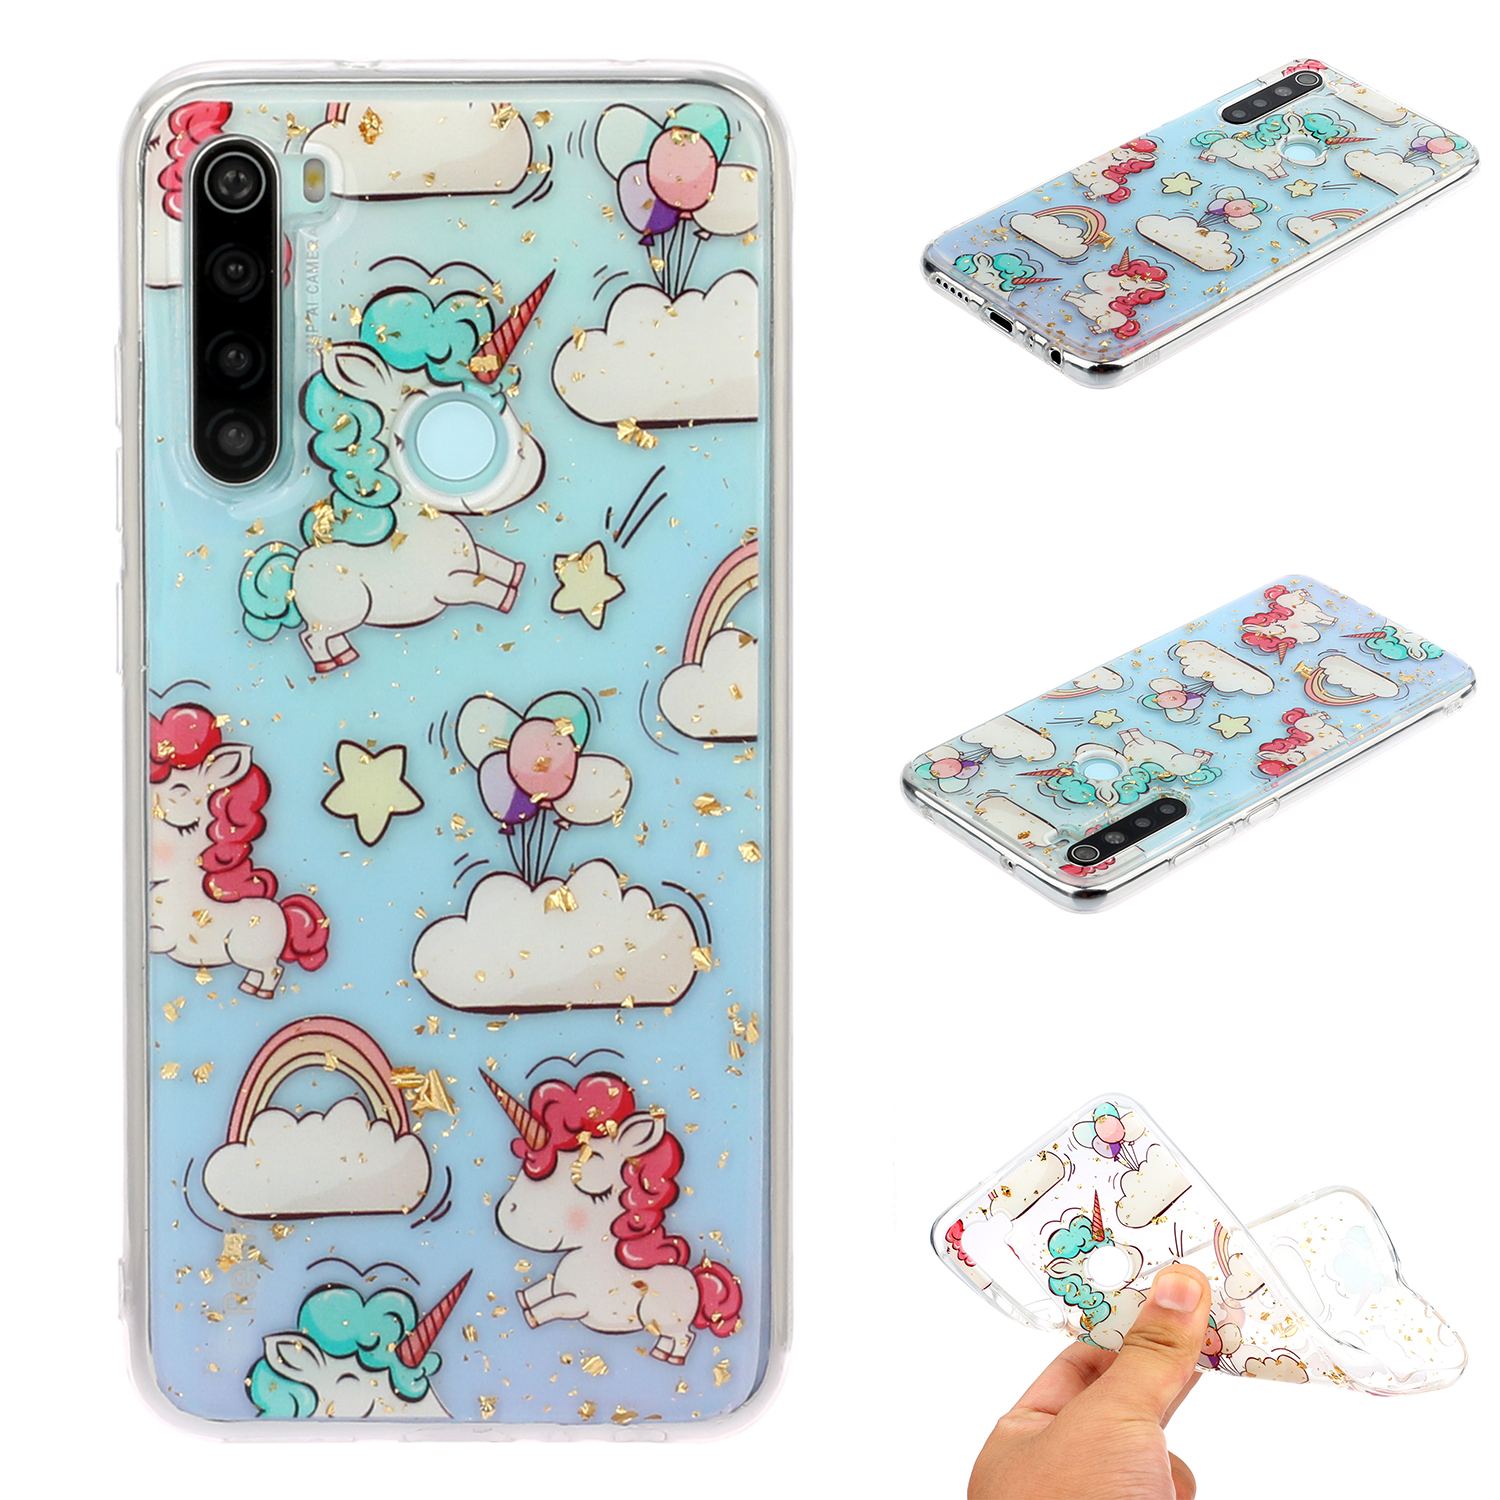 For Redmi Note 8 / Redmi Note 8 Pro Cellphone Cover Beautiful Painted Pattern Comfortable Wear TPU Phone Shell 9